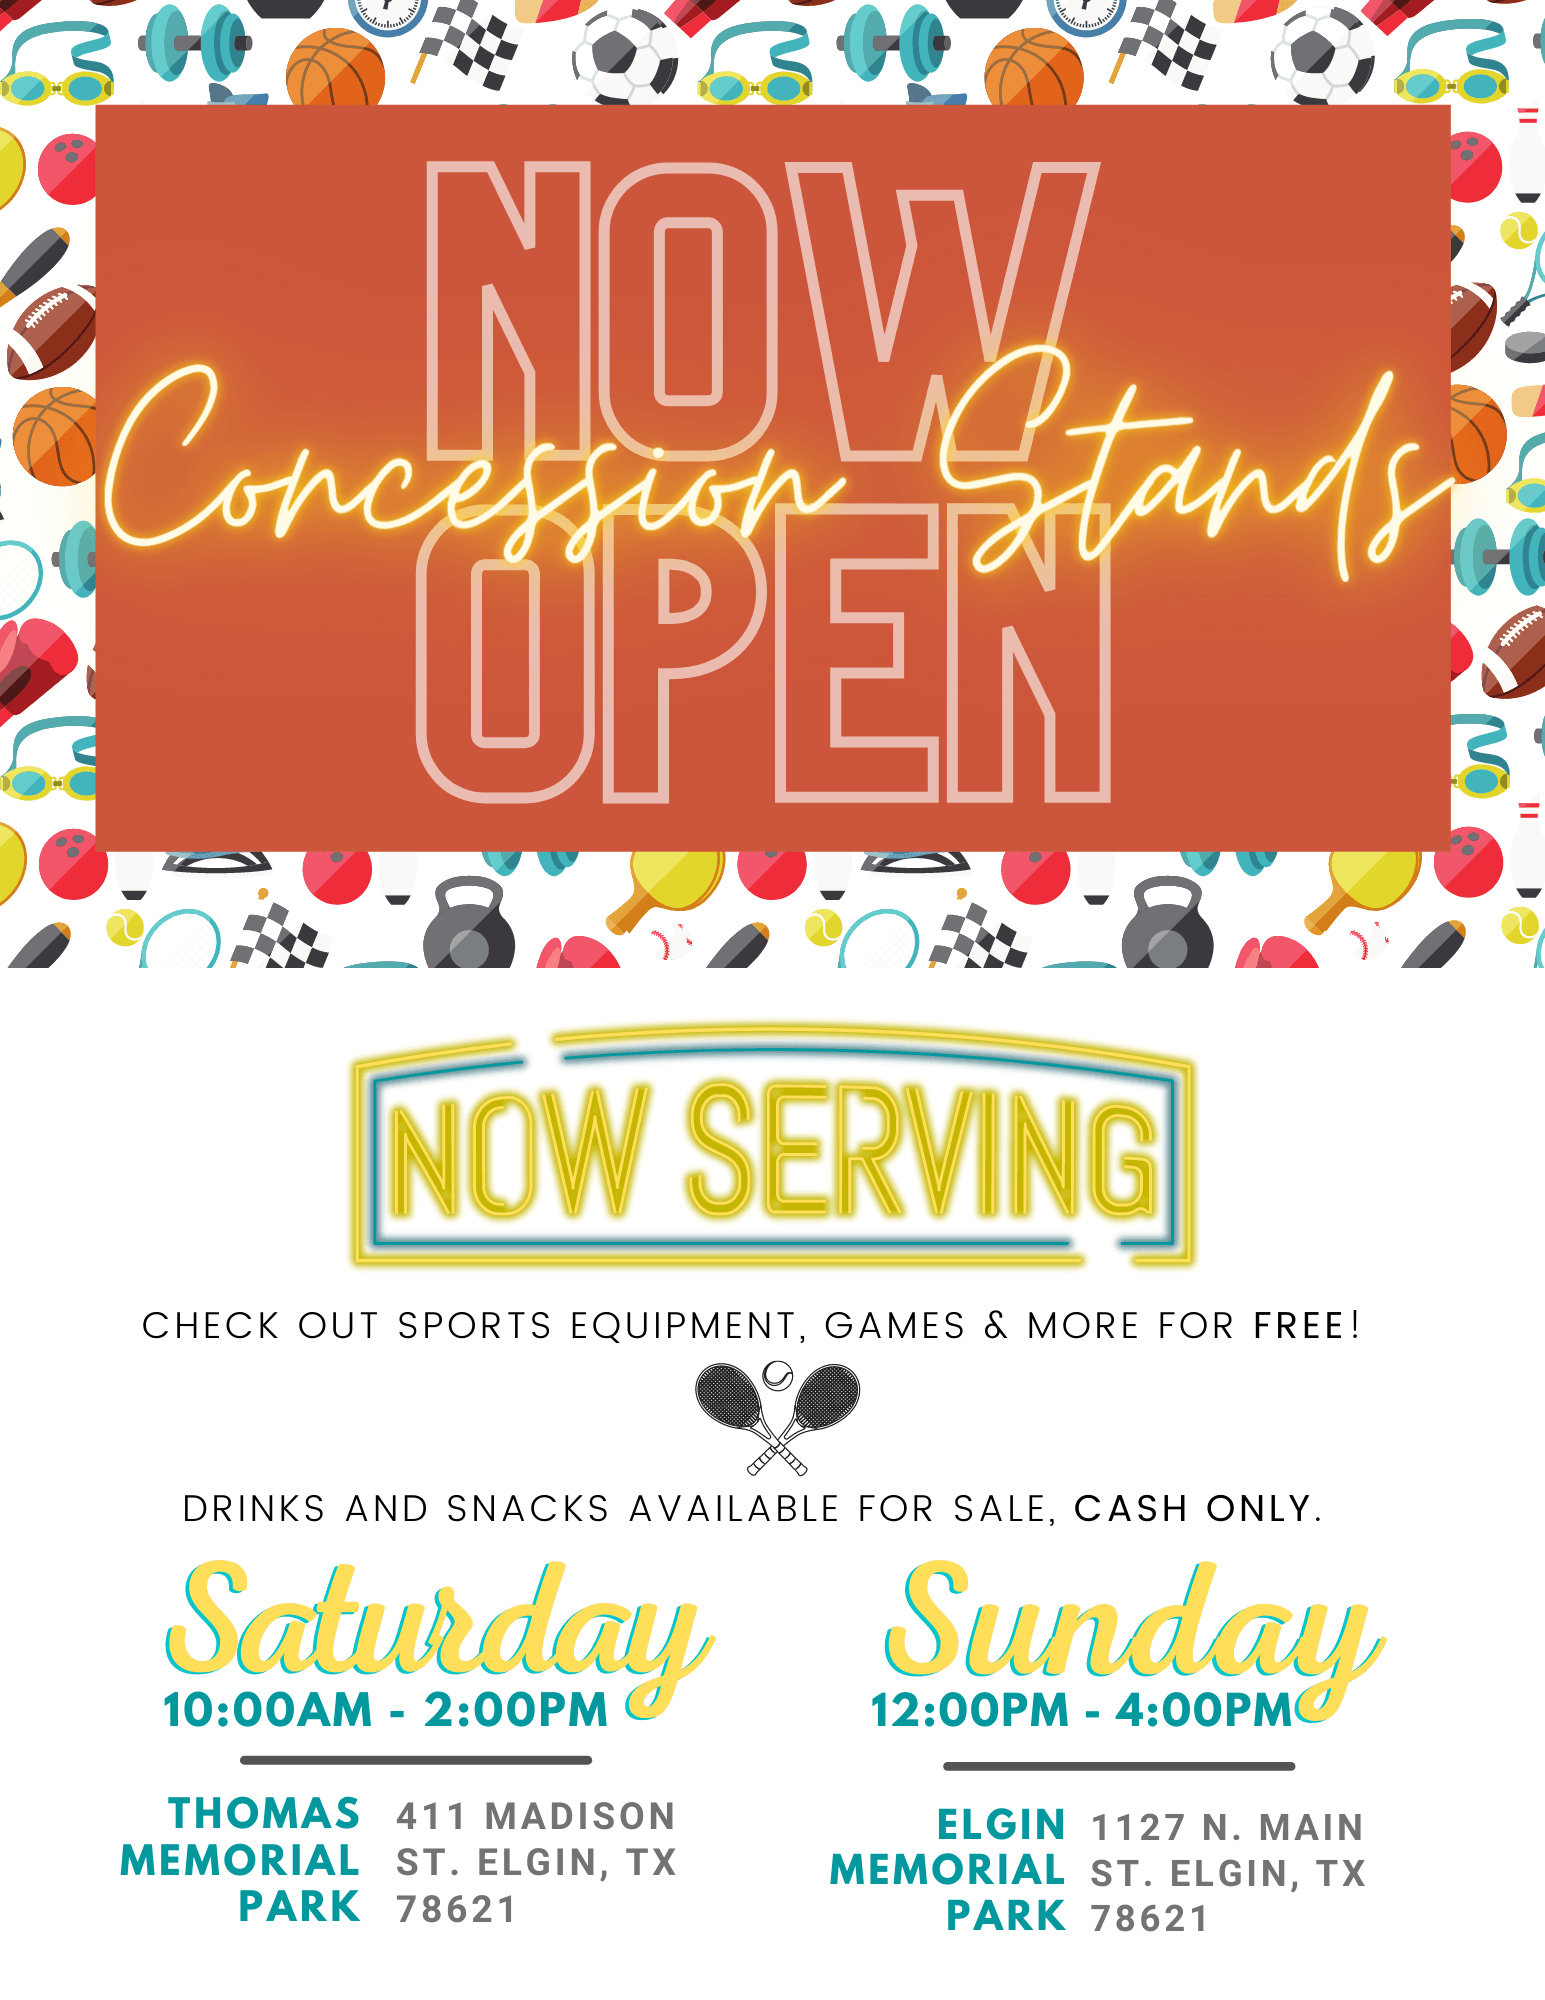 Concession Stand - Now Open Flyer